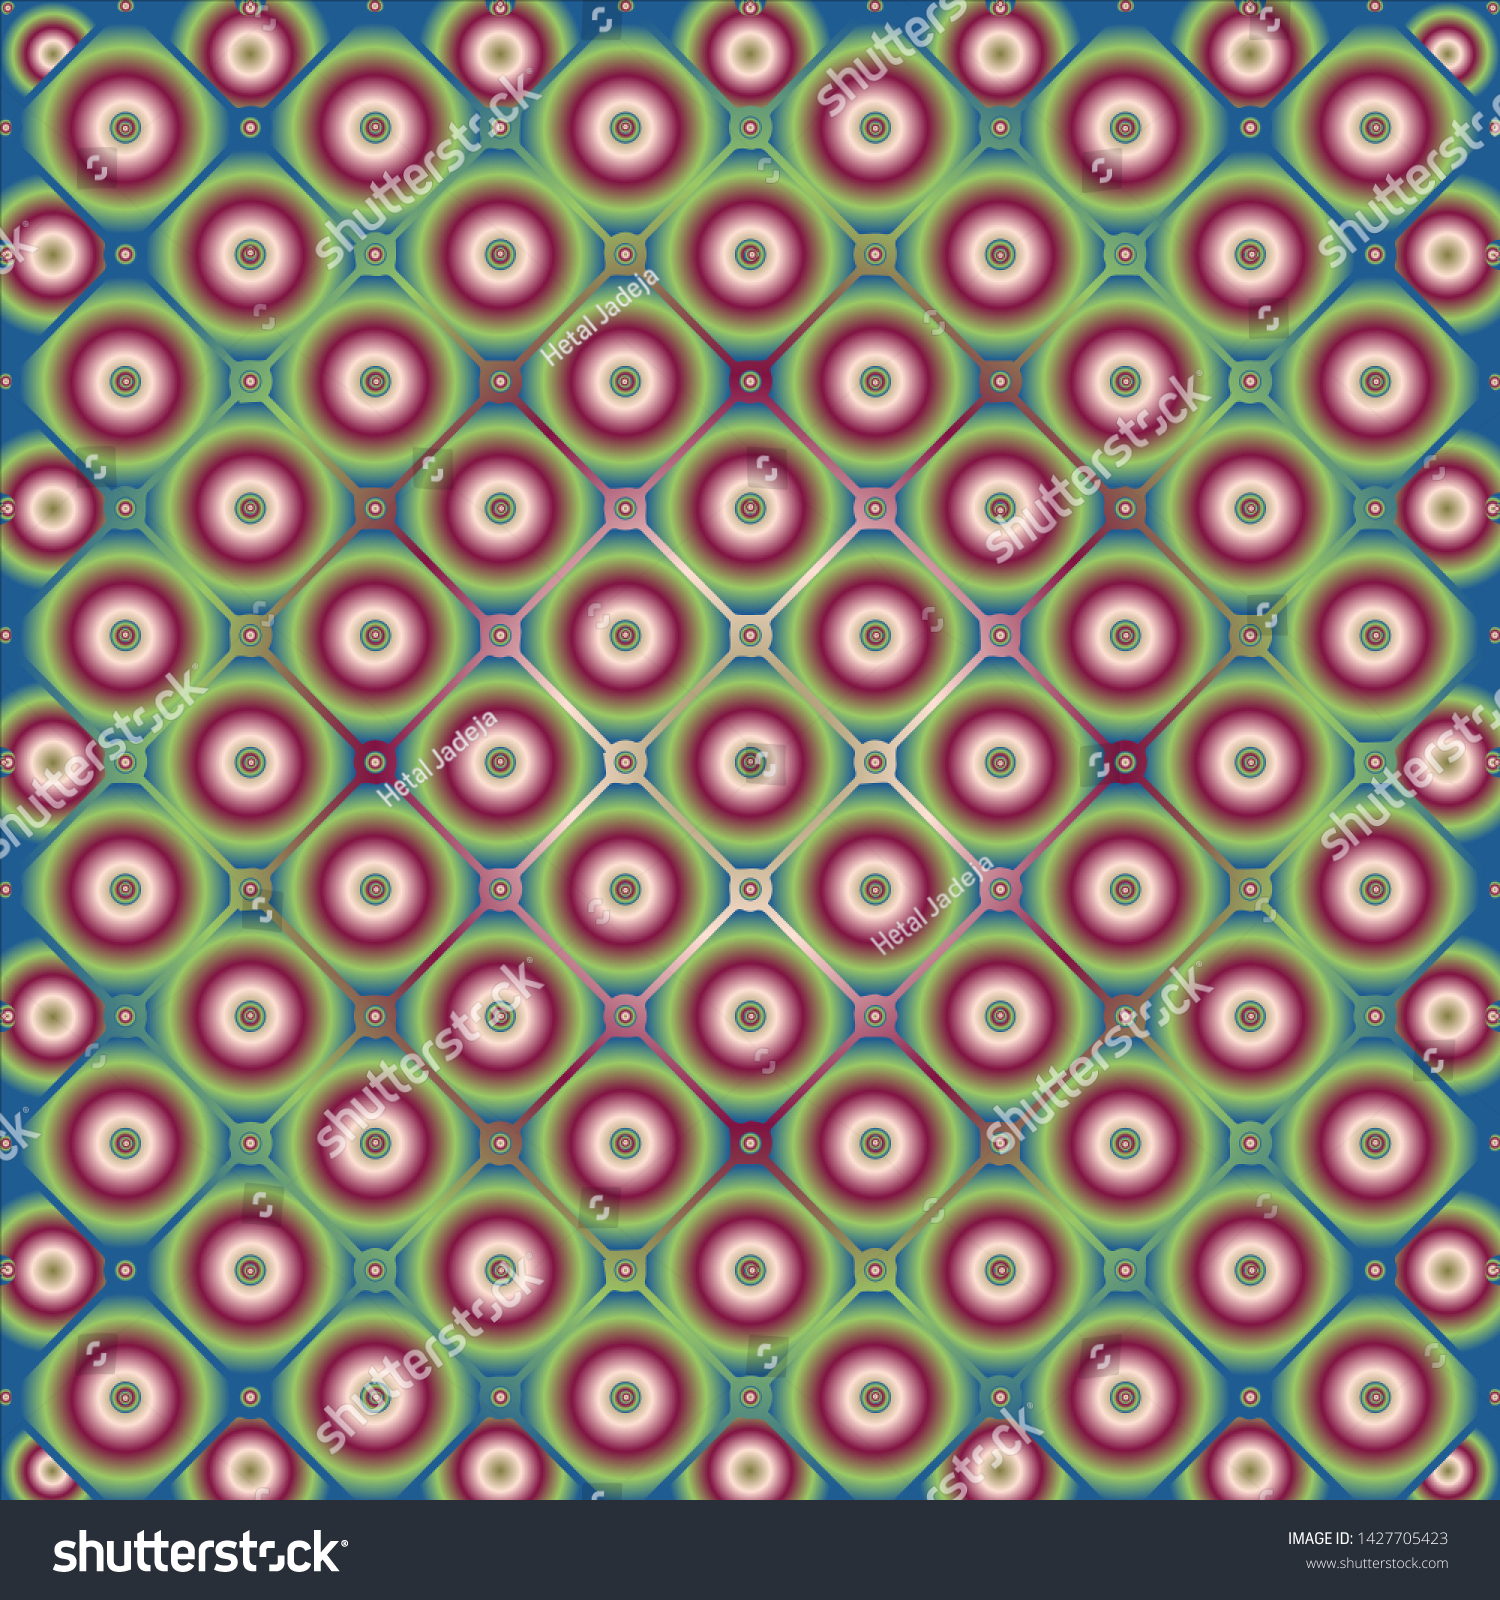 Colourful Square Circle Pattern Background Wallpapers Stock